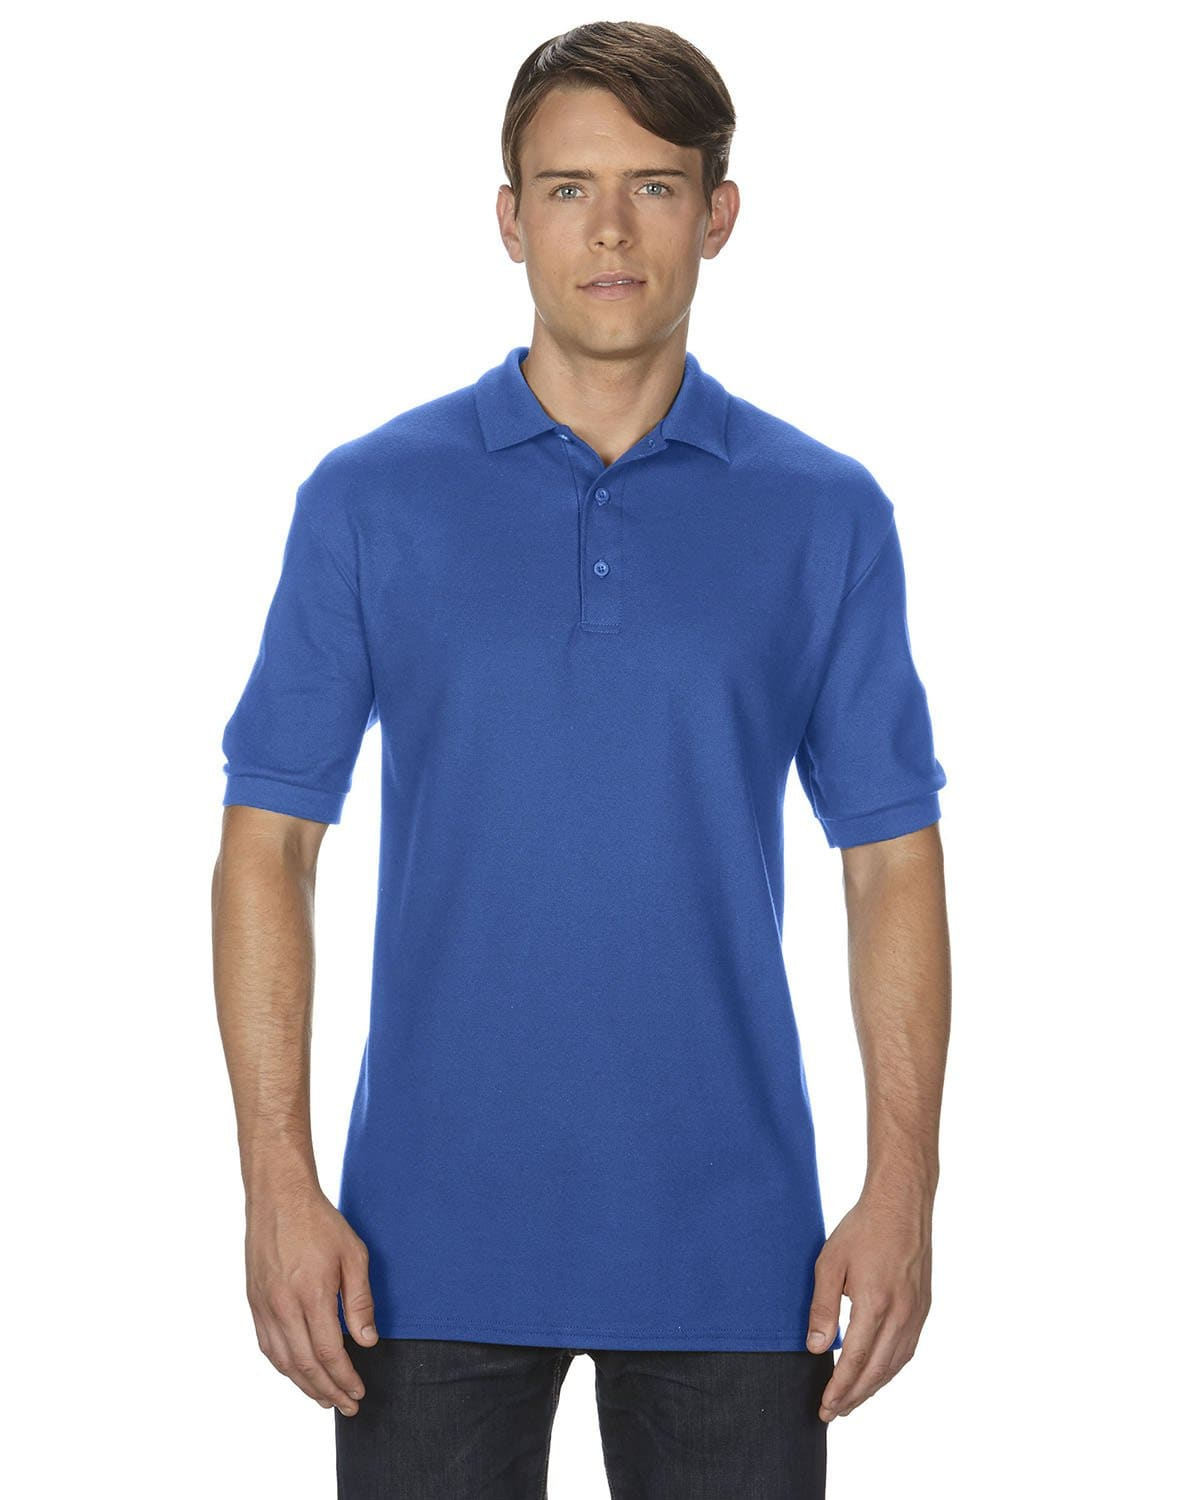 g828-adult-premium-cotton-adult-6-6oz-double-piqu-polo-2xl-5xl-5XL-BLACK-Oasispromos